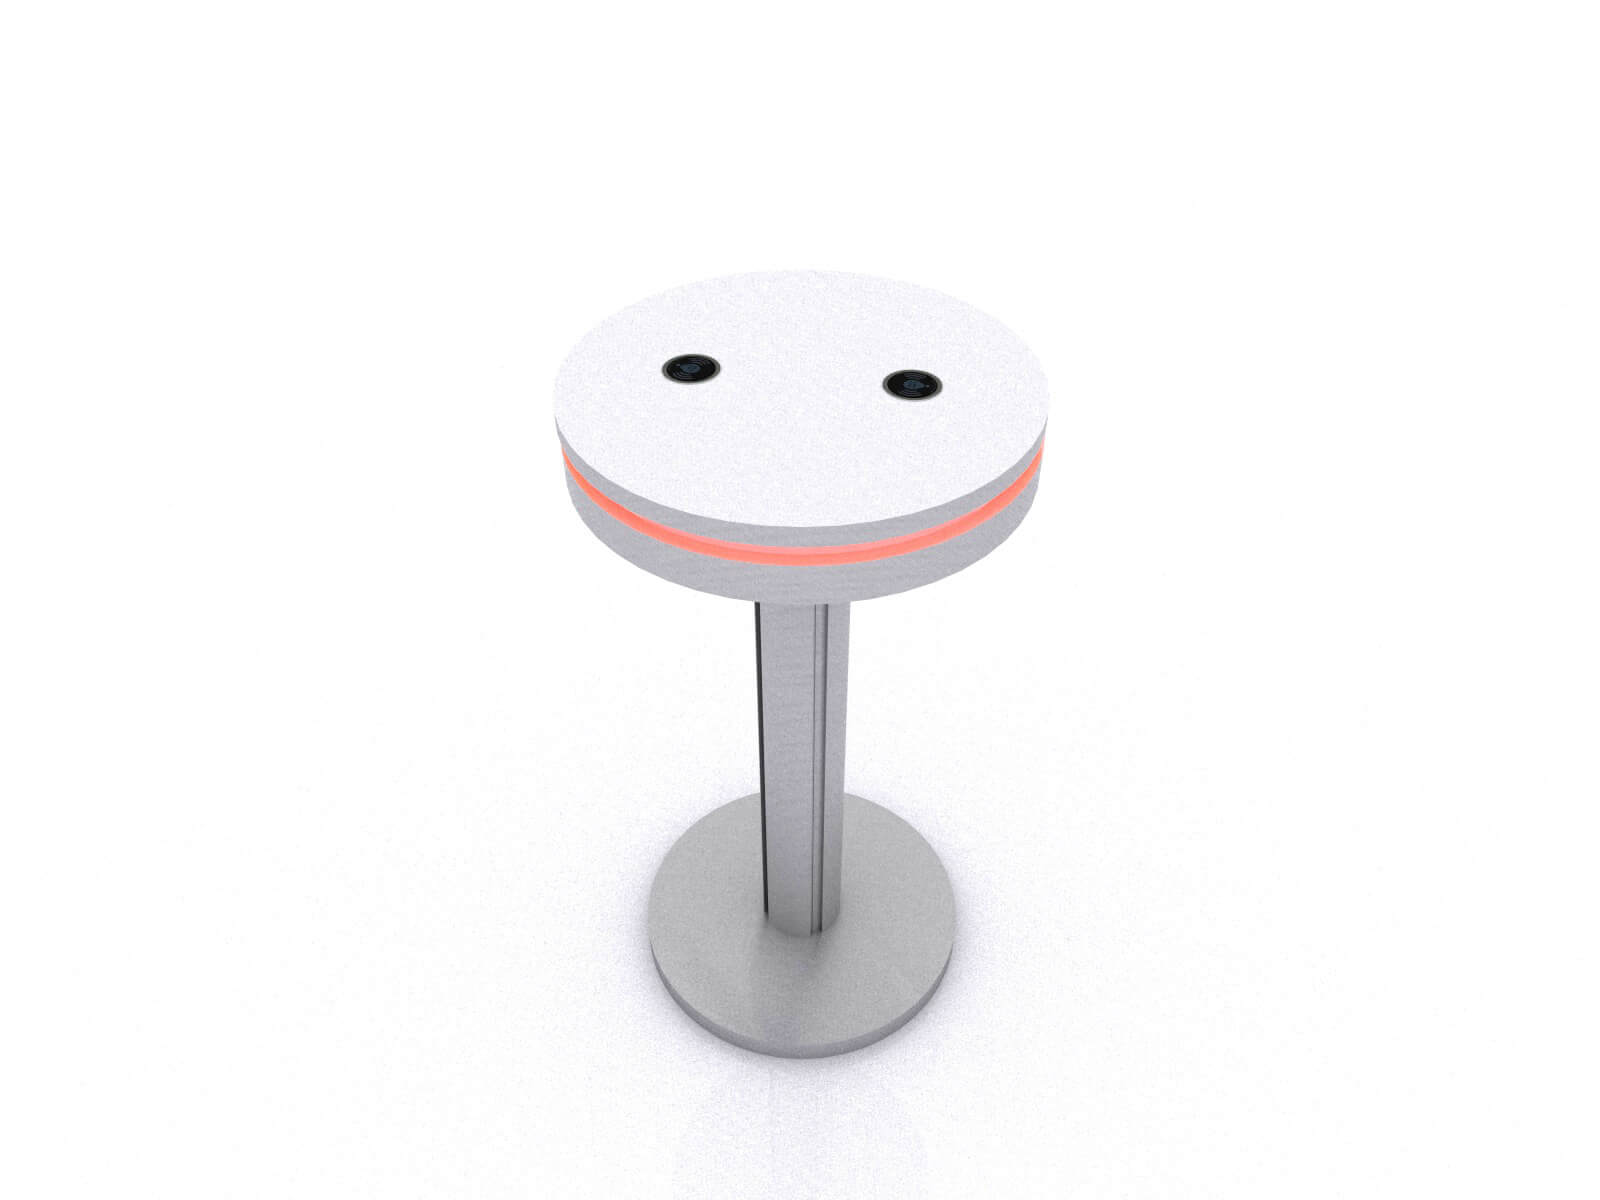 MOD-1462 Wireless Portable Bistro Table without Graphic